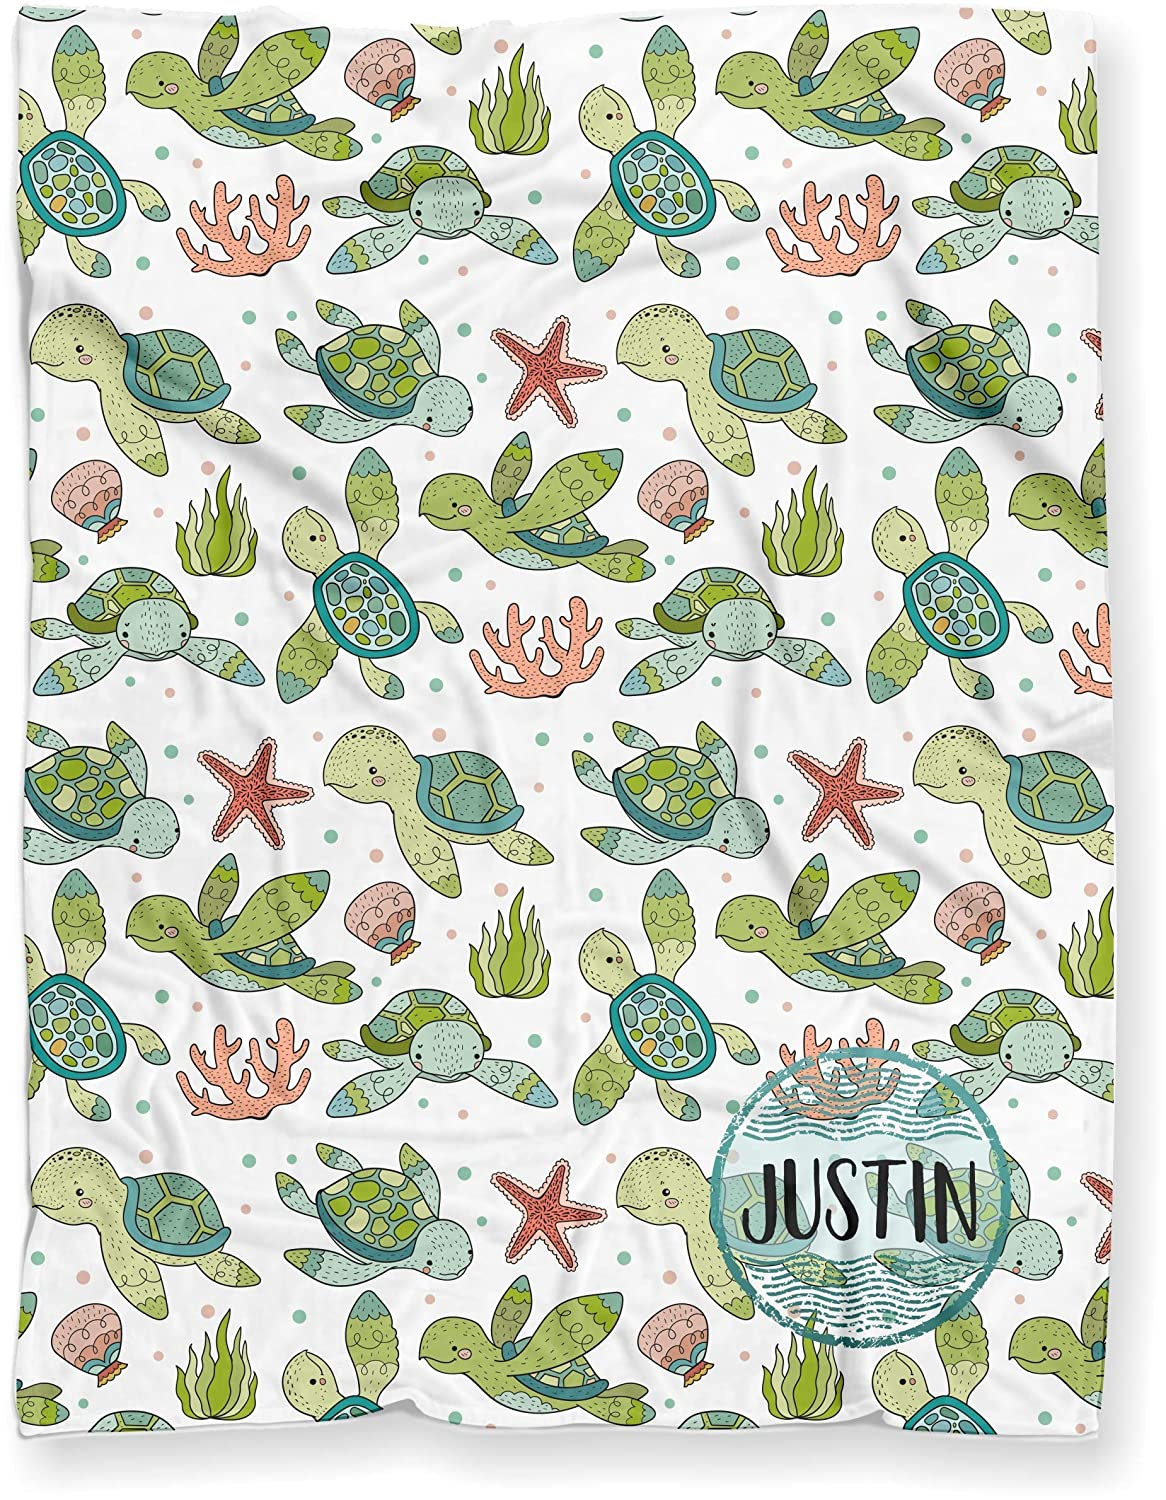 B07MXDLHTL Luxuriously Soft Personalized Baby Name Blanket for Nursery Crib Throw or Toddler Bed | Cute Sea Turtles and Starfish Nautical Theme Minky Blanket for Baby Girl or Boy 91ruzkVtr7L